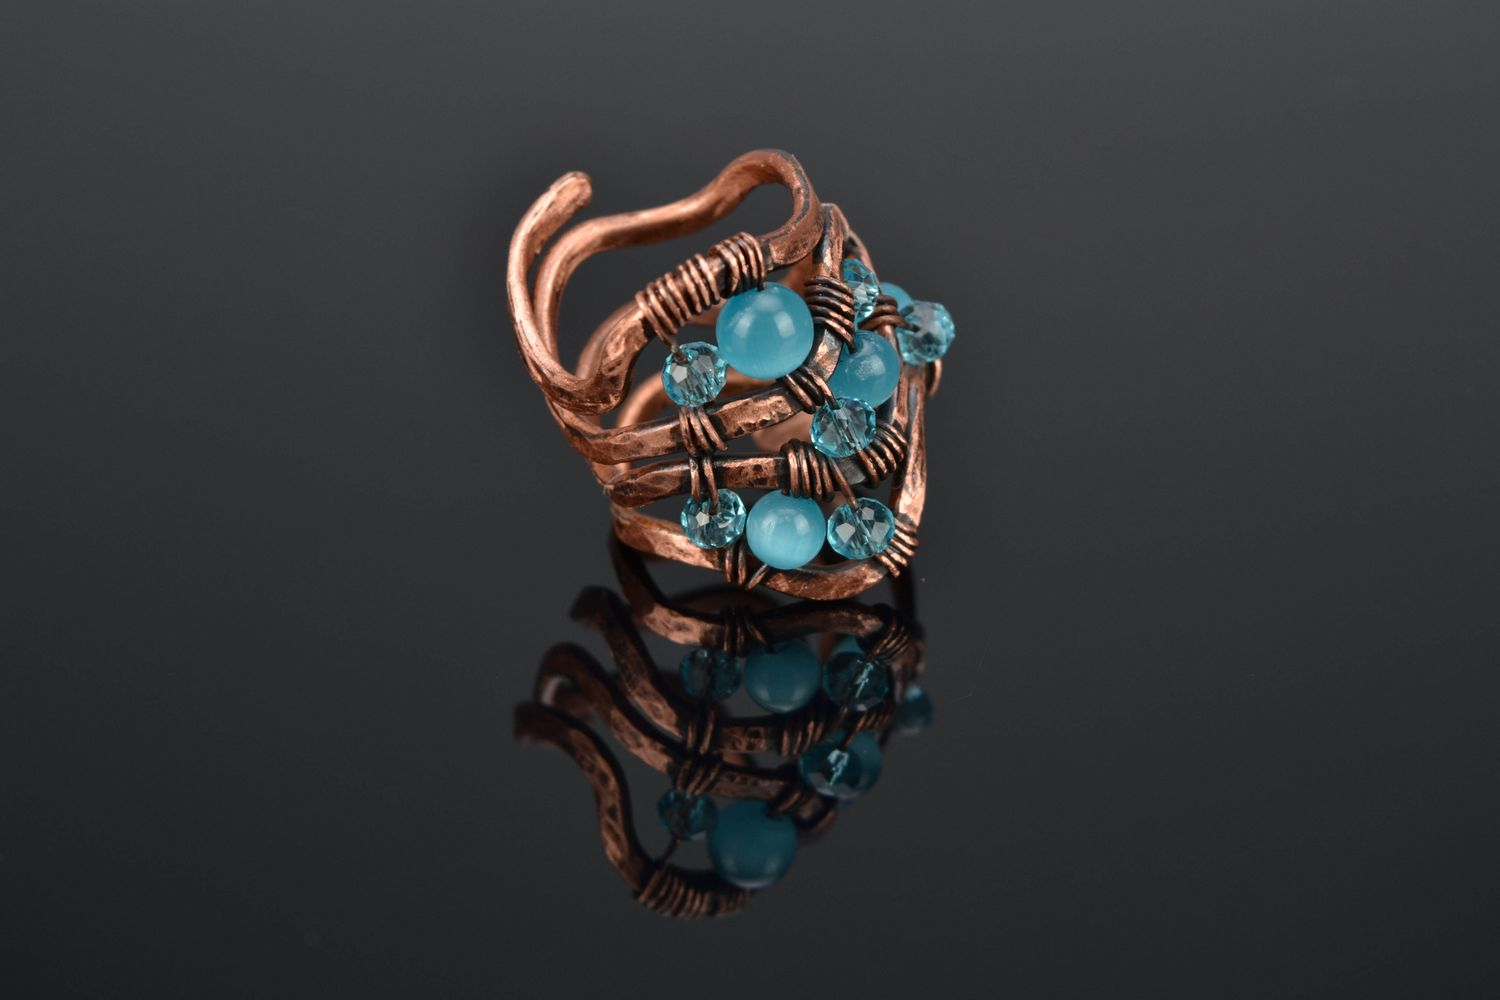 Wire wrap copper ring with cat's eye stone photo 1